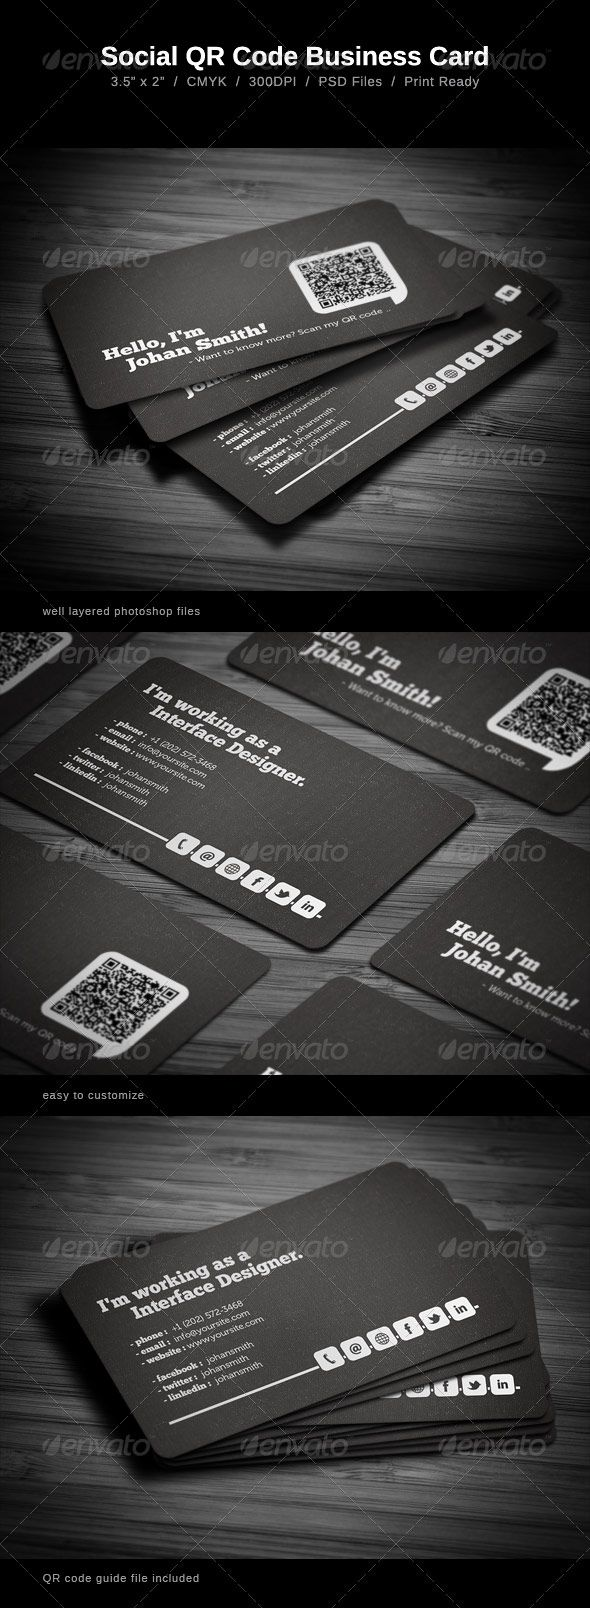 60 Best Creative Business Cards Images On Pinterest Business Cards